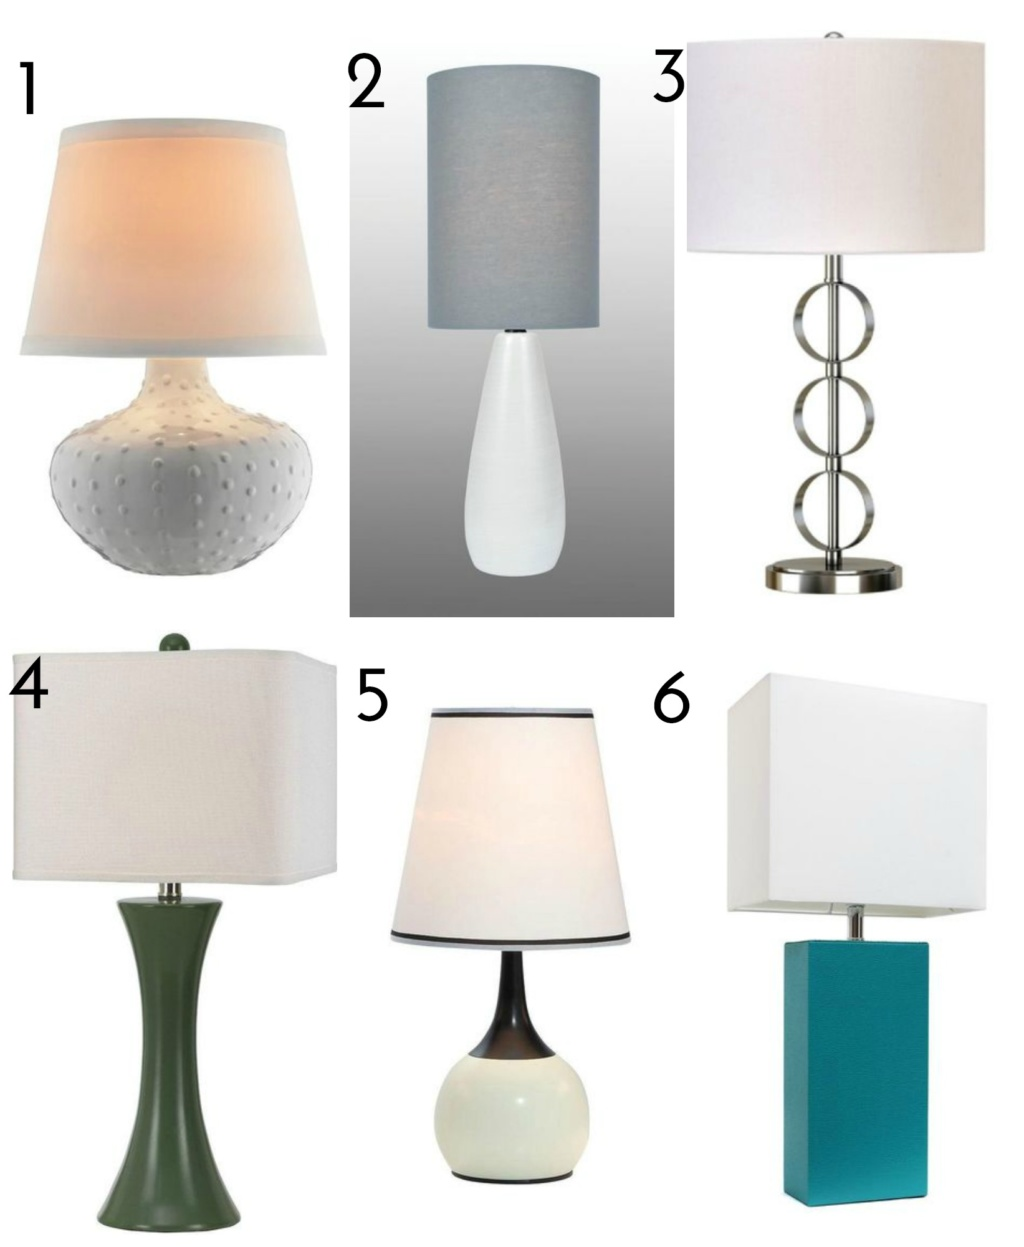 Where to buy lamps that are gorgeous and affordable i would never think to go to home depot for lamps ceiling fixtures sure outdoor lights yup but table lamps nah well i stand corrected home depot aloadofball Images